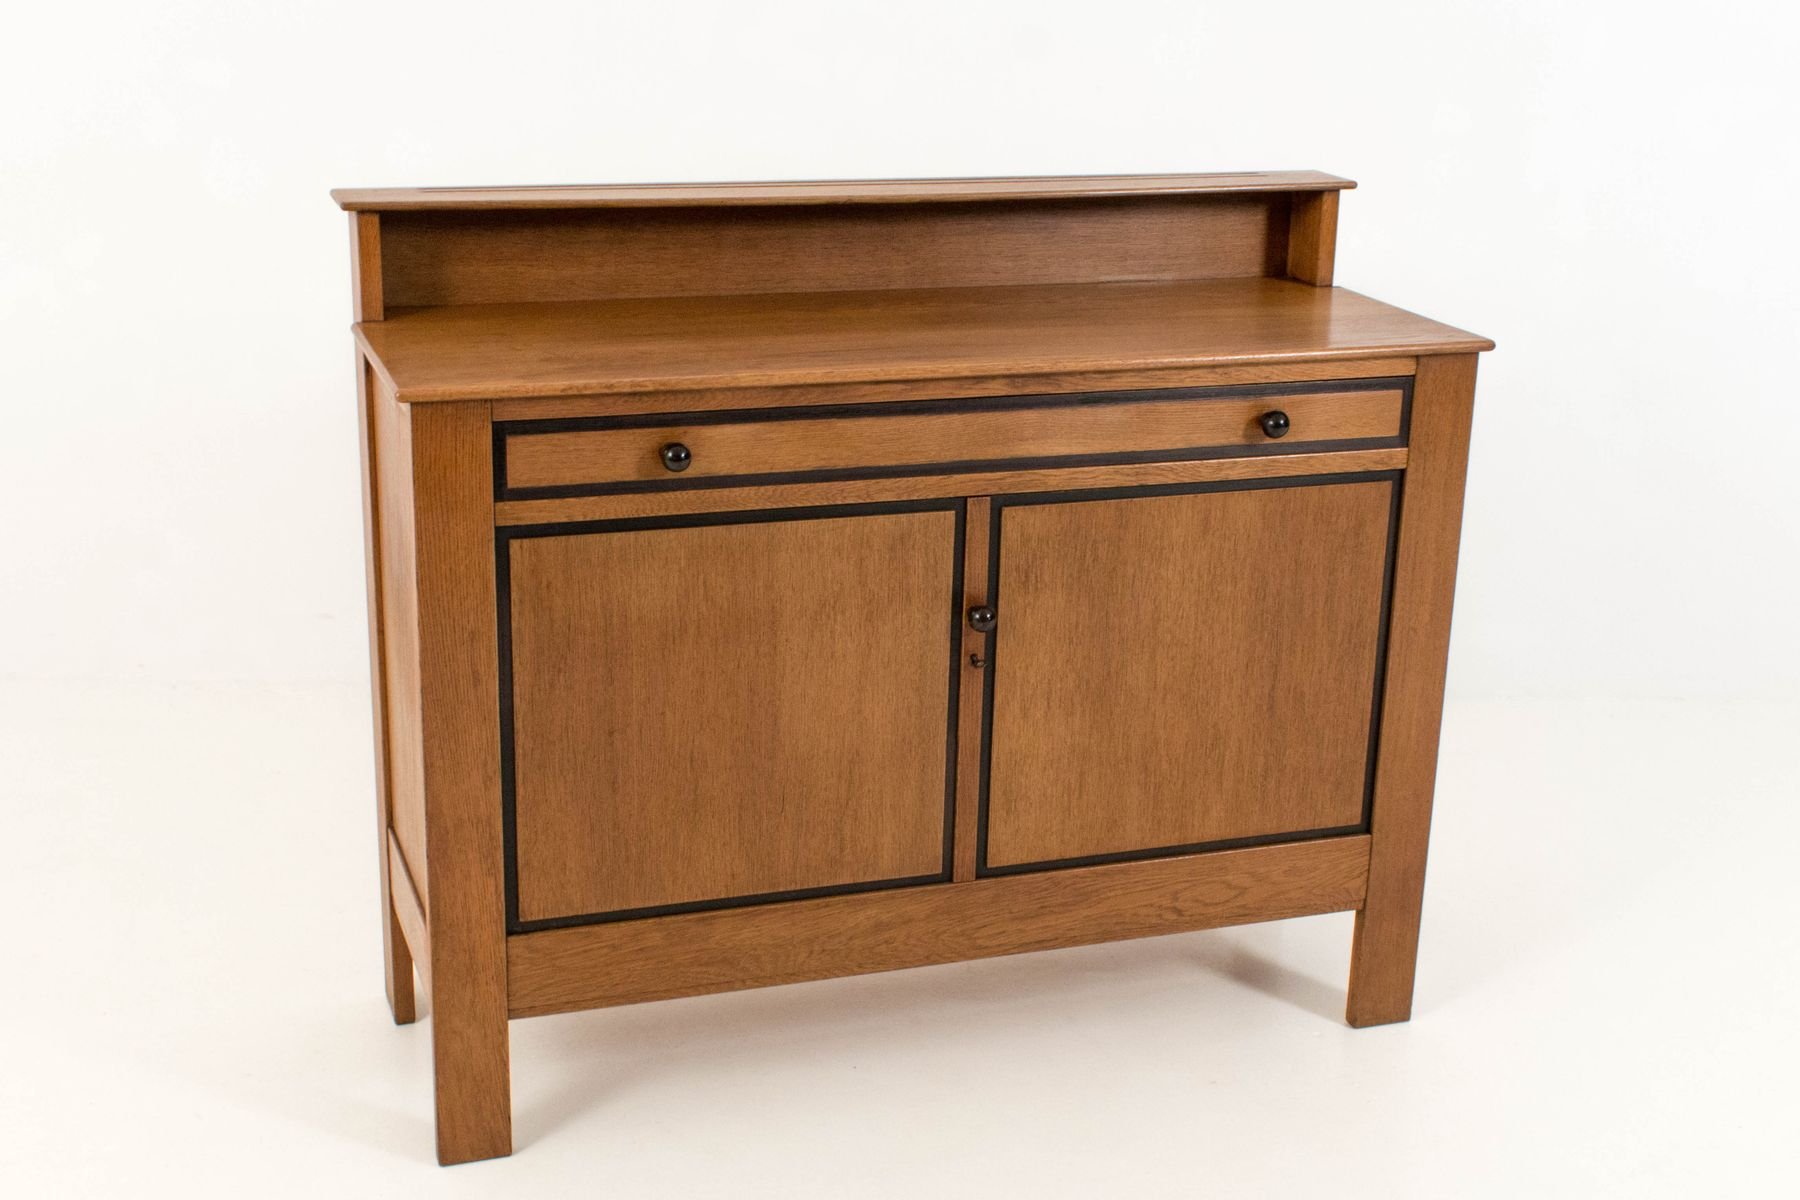 art deco hague school buffet by j a muntendam for l o v. Black Bedroom Furniture Sets. Home Design Ideas